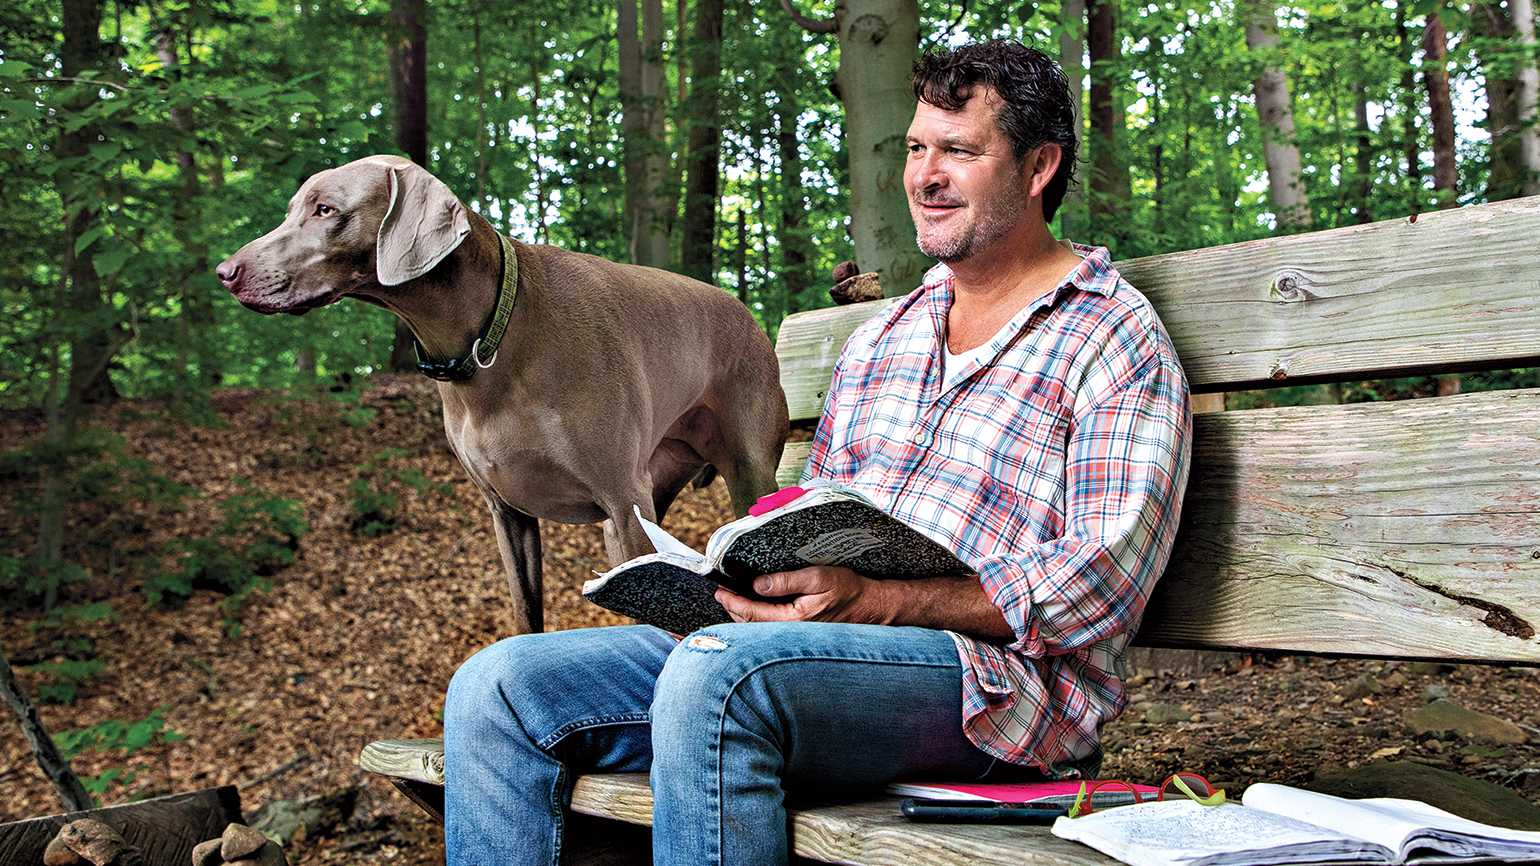 Mark and new Weimaraner Hazel on the bench he made